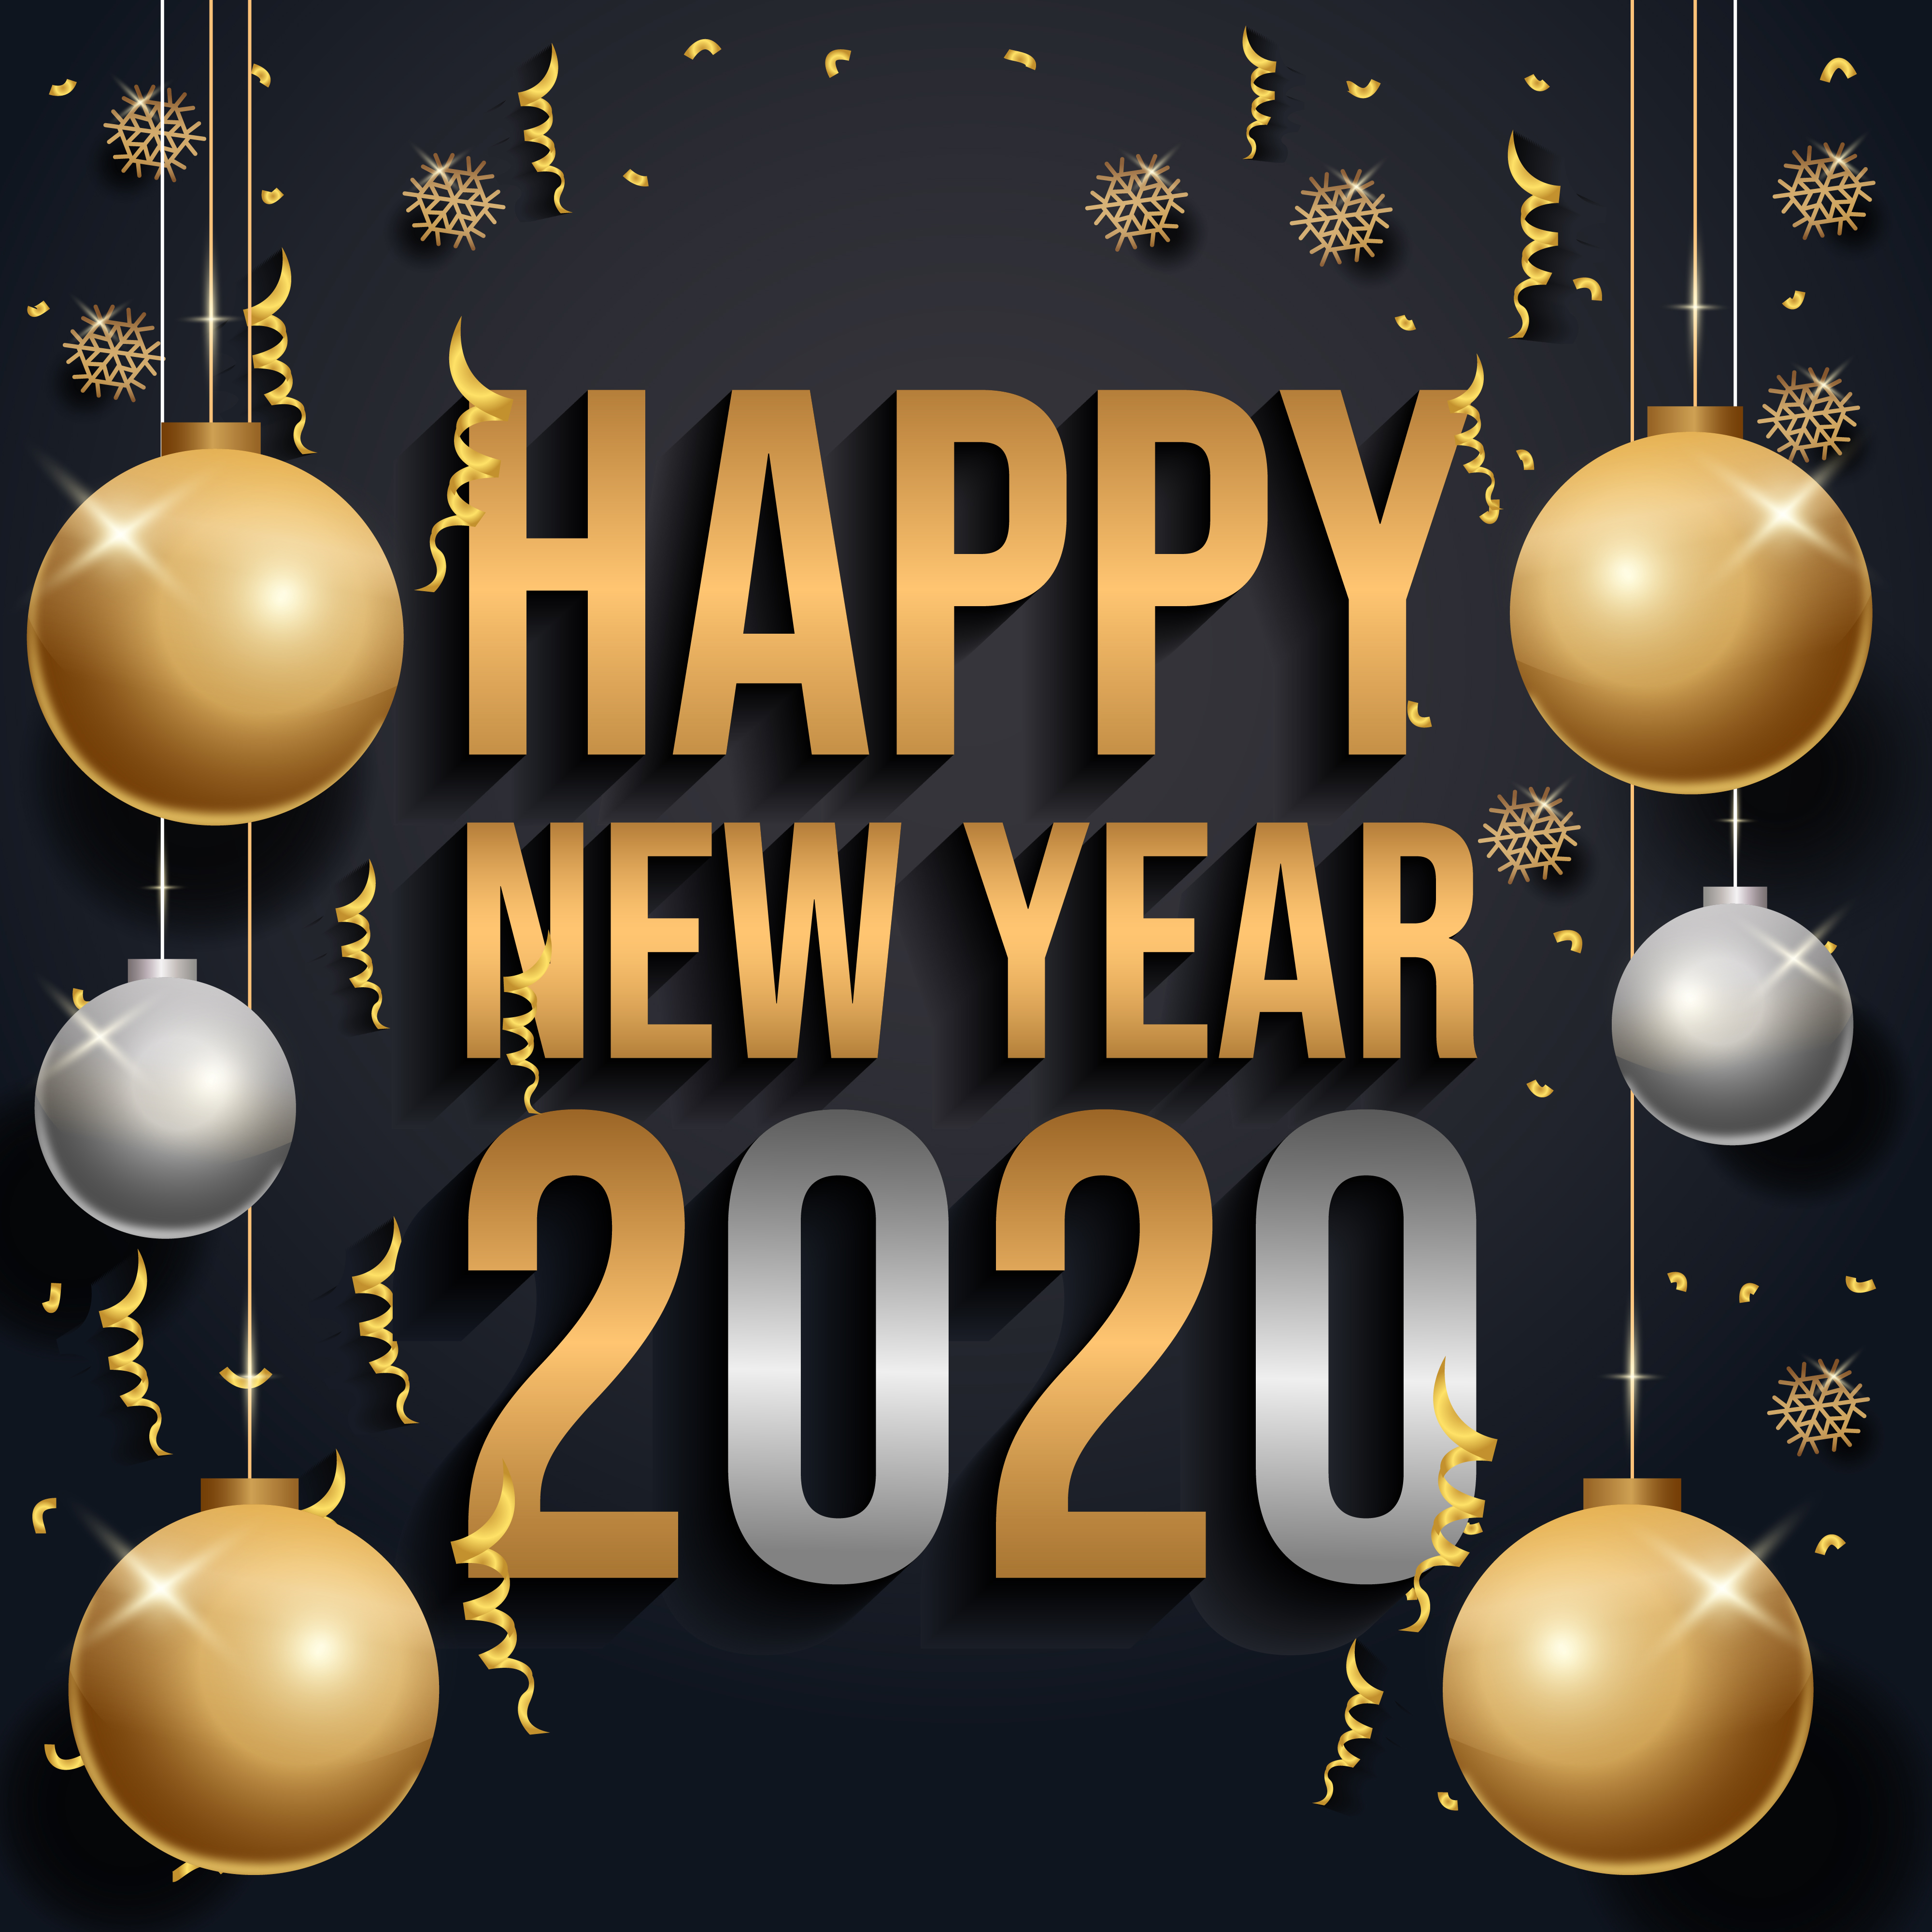 Happy new year 2020 - Download Free Vectors, Clipart ...